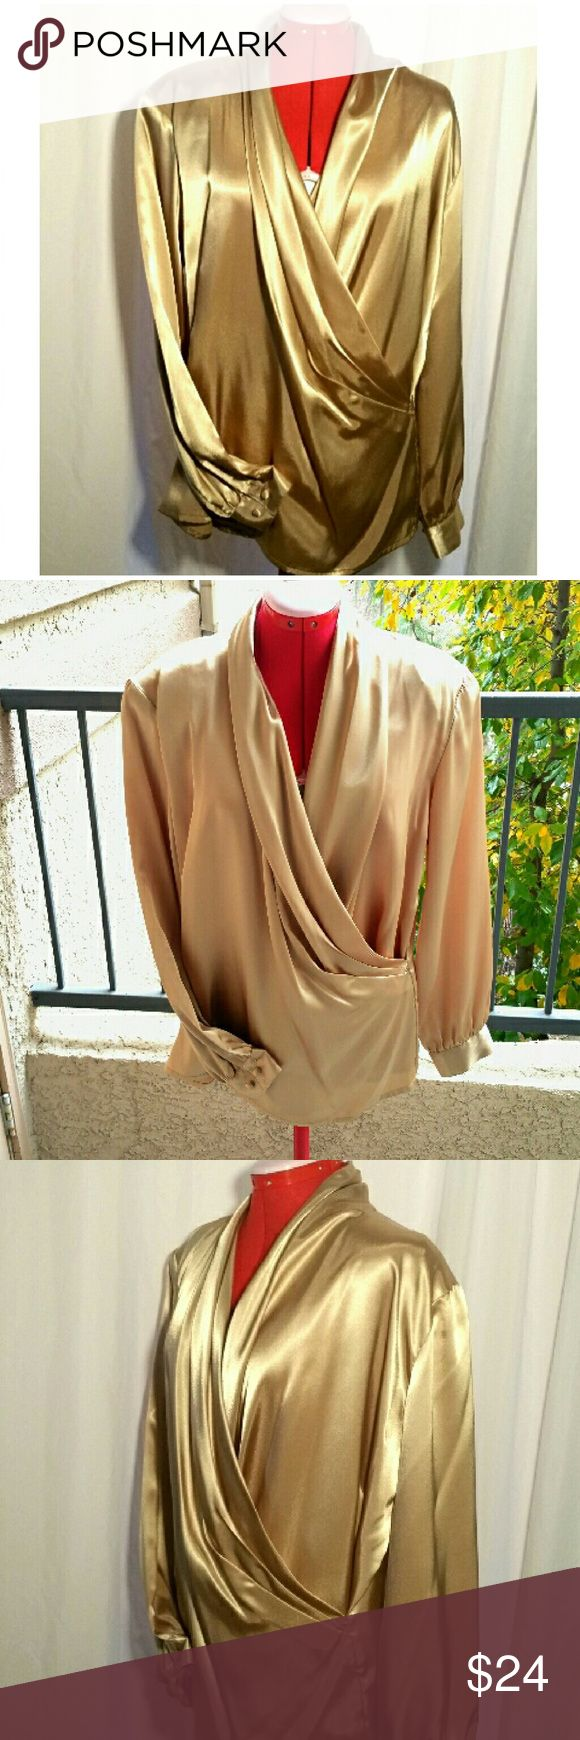 """SALE! Vtg Liquid Gold Satin Blouse - Plus Size STUNNING! You'll be sure to get raves wearing this to your holiday party! Wear it with black velvet slacks or skirt! This gorgeous, liquid gold blouse features a surplice neckline and ruched shawl collar in back The covered button cuffs are gently gathered to the long sleeves. It also has shoulder pads The satin-like fabric seems to flow! Great condition!  Tan-Jay/Nygard, size 16, fits 1X/2X 18.5"""" across shoulders 24.5"""" armpit to armpit (49"""")…"""